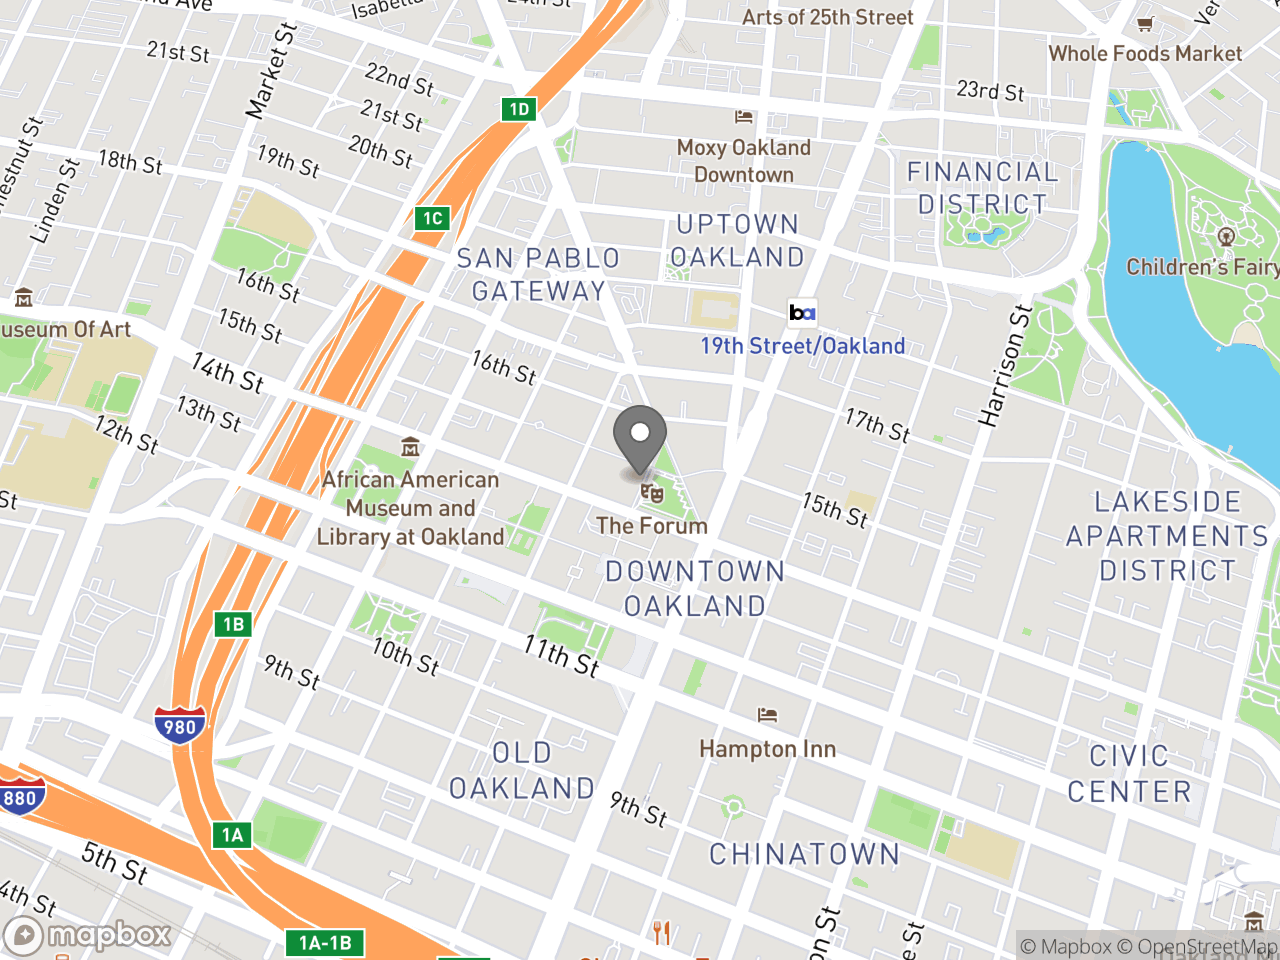 Map location for August 21, 2019 Planning Commission Meeting, located at One Frank H Ogawa Plaza in Oakland, CA 94612